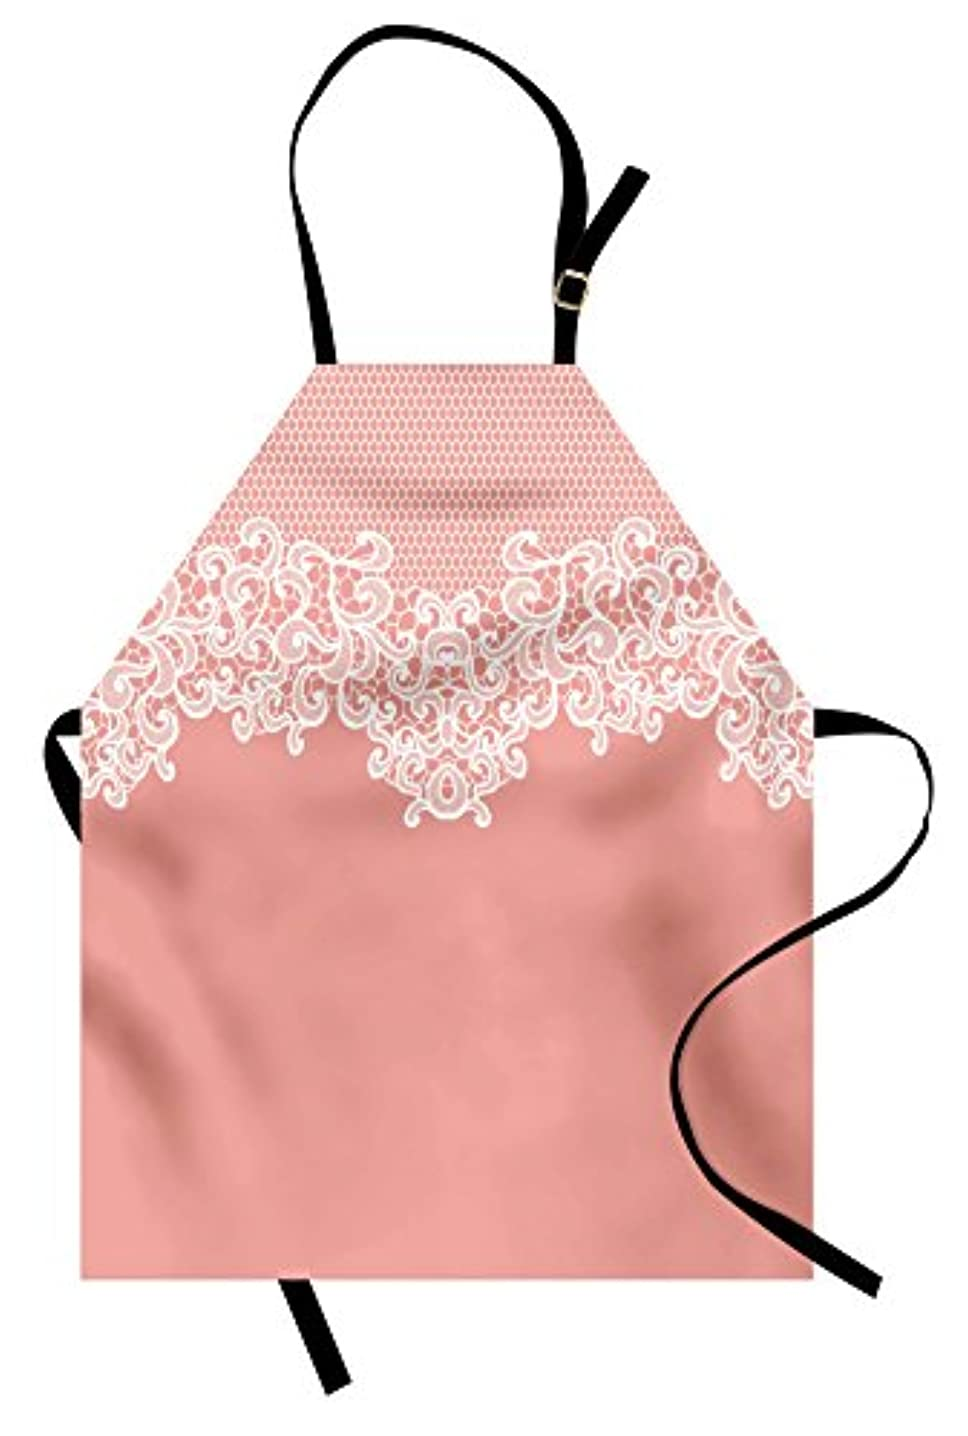 Ambesonne Peach Apron, Abstract Lace Design Wedding Engagement Inspiration Floral Arrangement Pale Backdrop, Unisex Kitchen Bib Apron with Adjustable Neck for Cooking Baking Gardening, Coral White